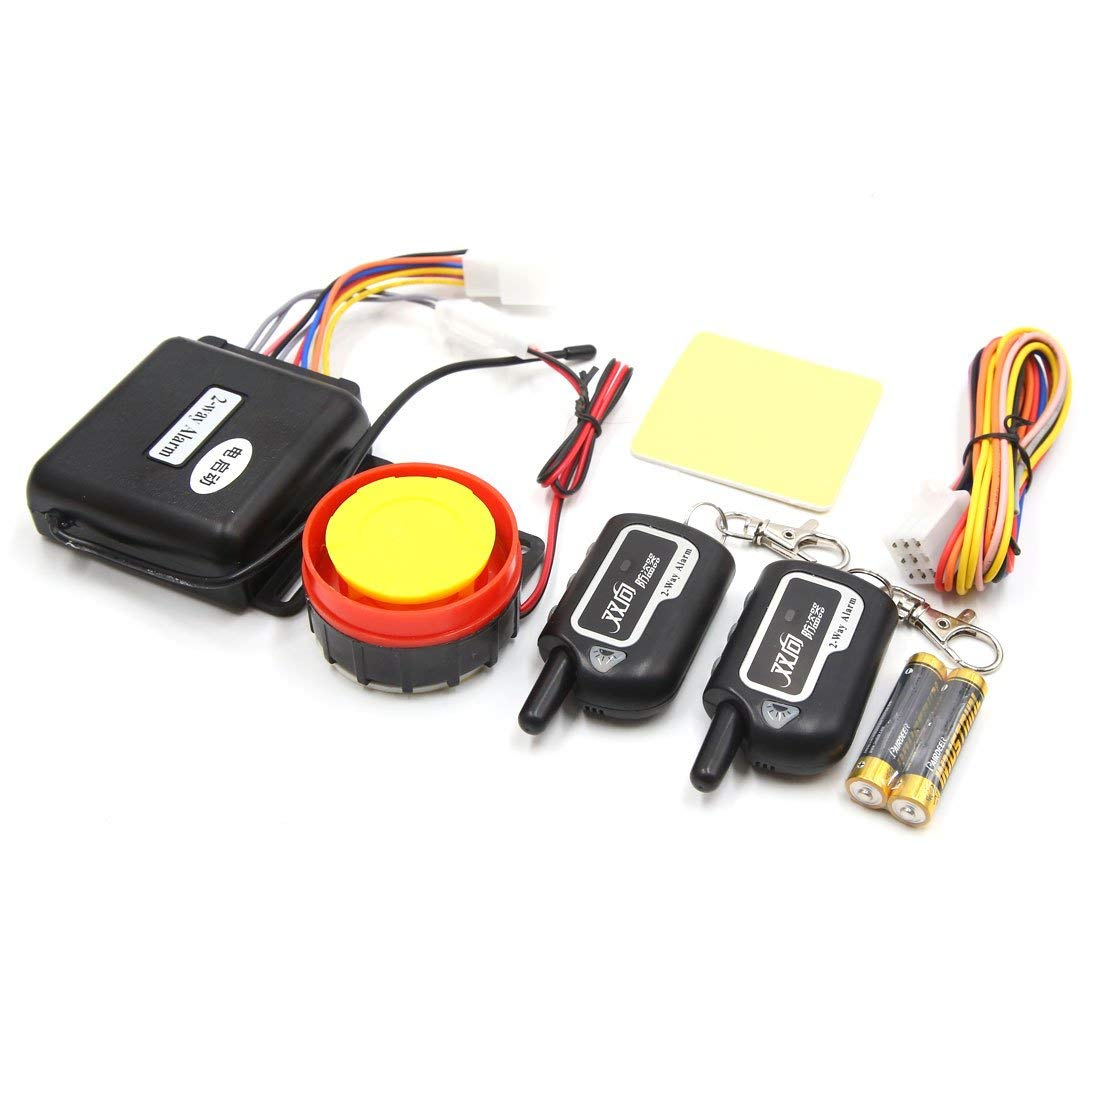 Uxcell 2-Way Motorcycle Anti-Theft Alarm System Engine Start W Remote Control 125dB